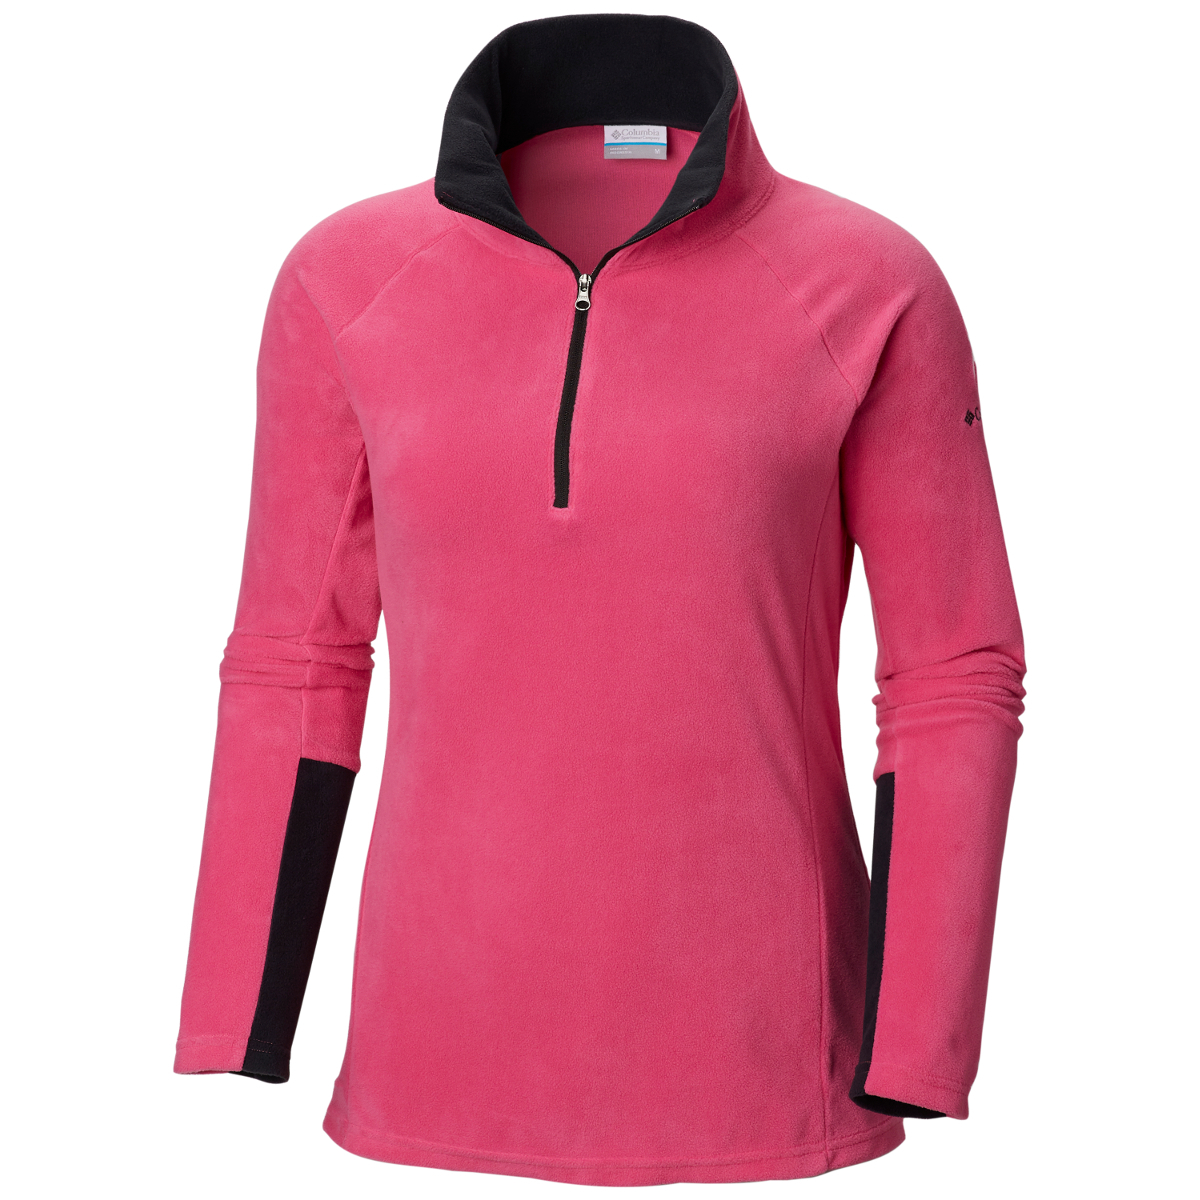 Columbia Women's Tested Tough In Pink Half Zip Pullover - Red, L